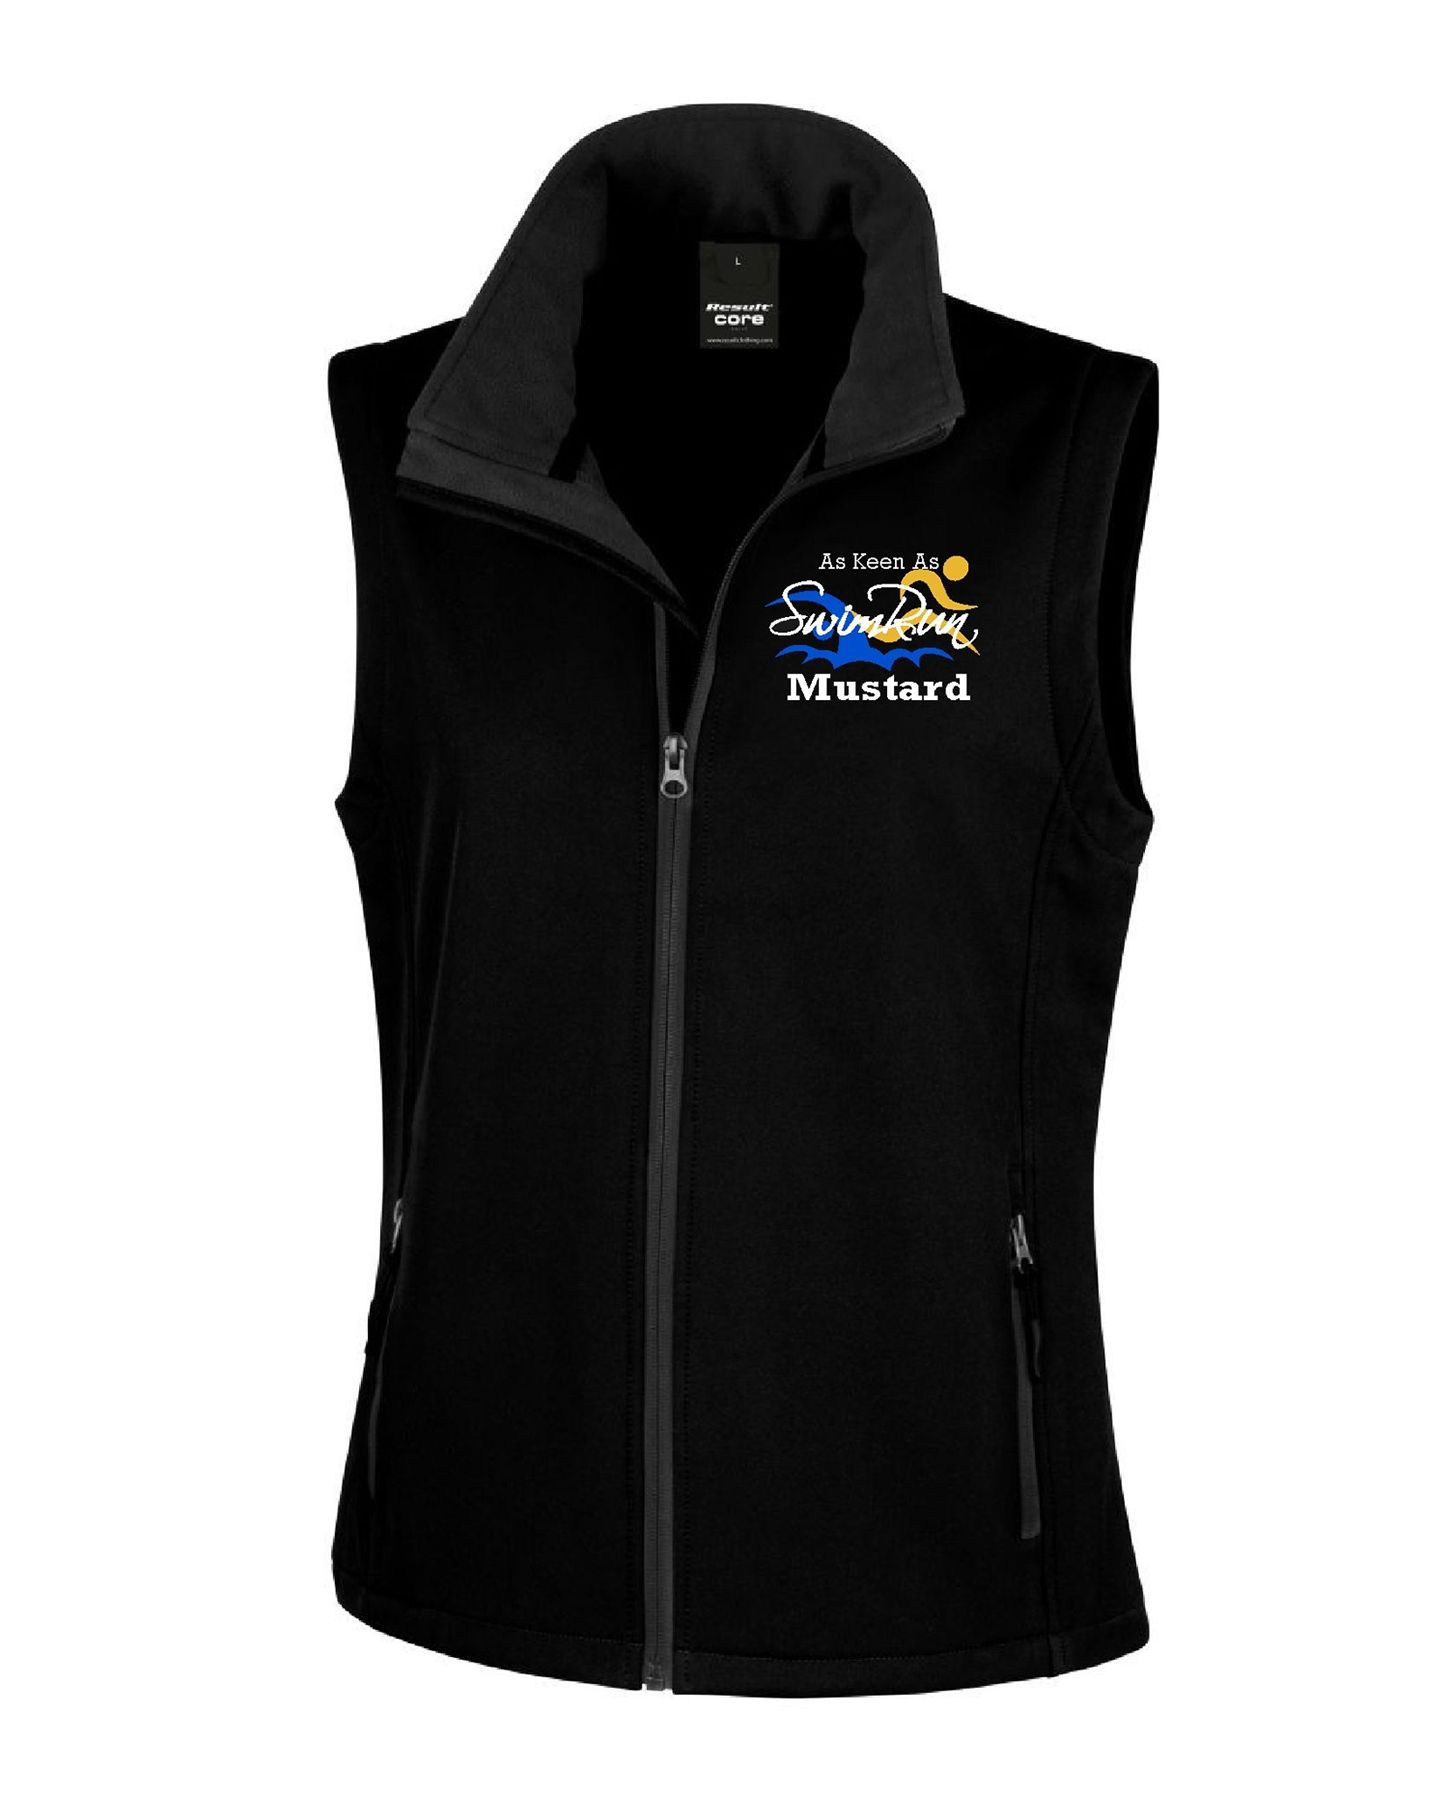 As Keen As Mustard – Softshell Gilet (Lady Fit)